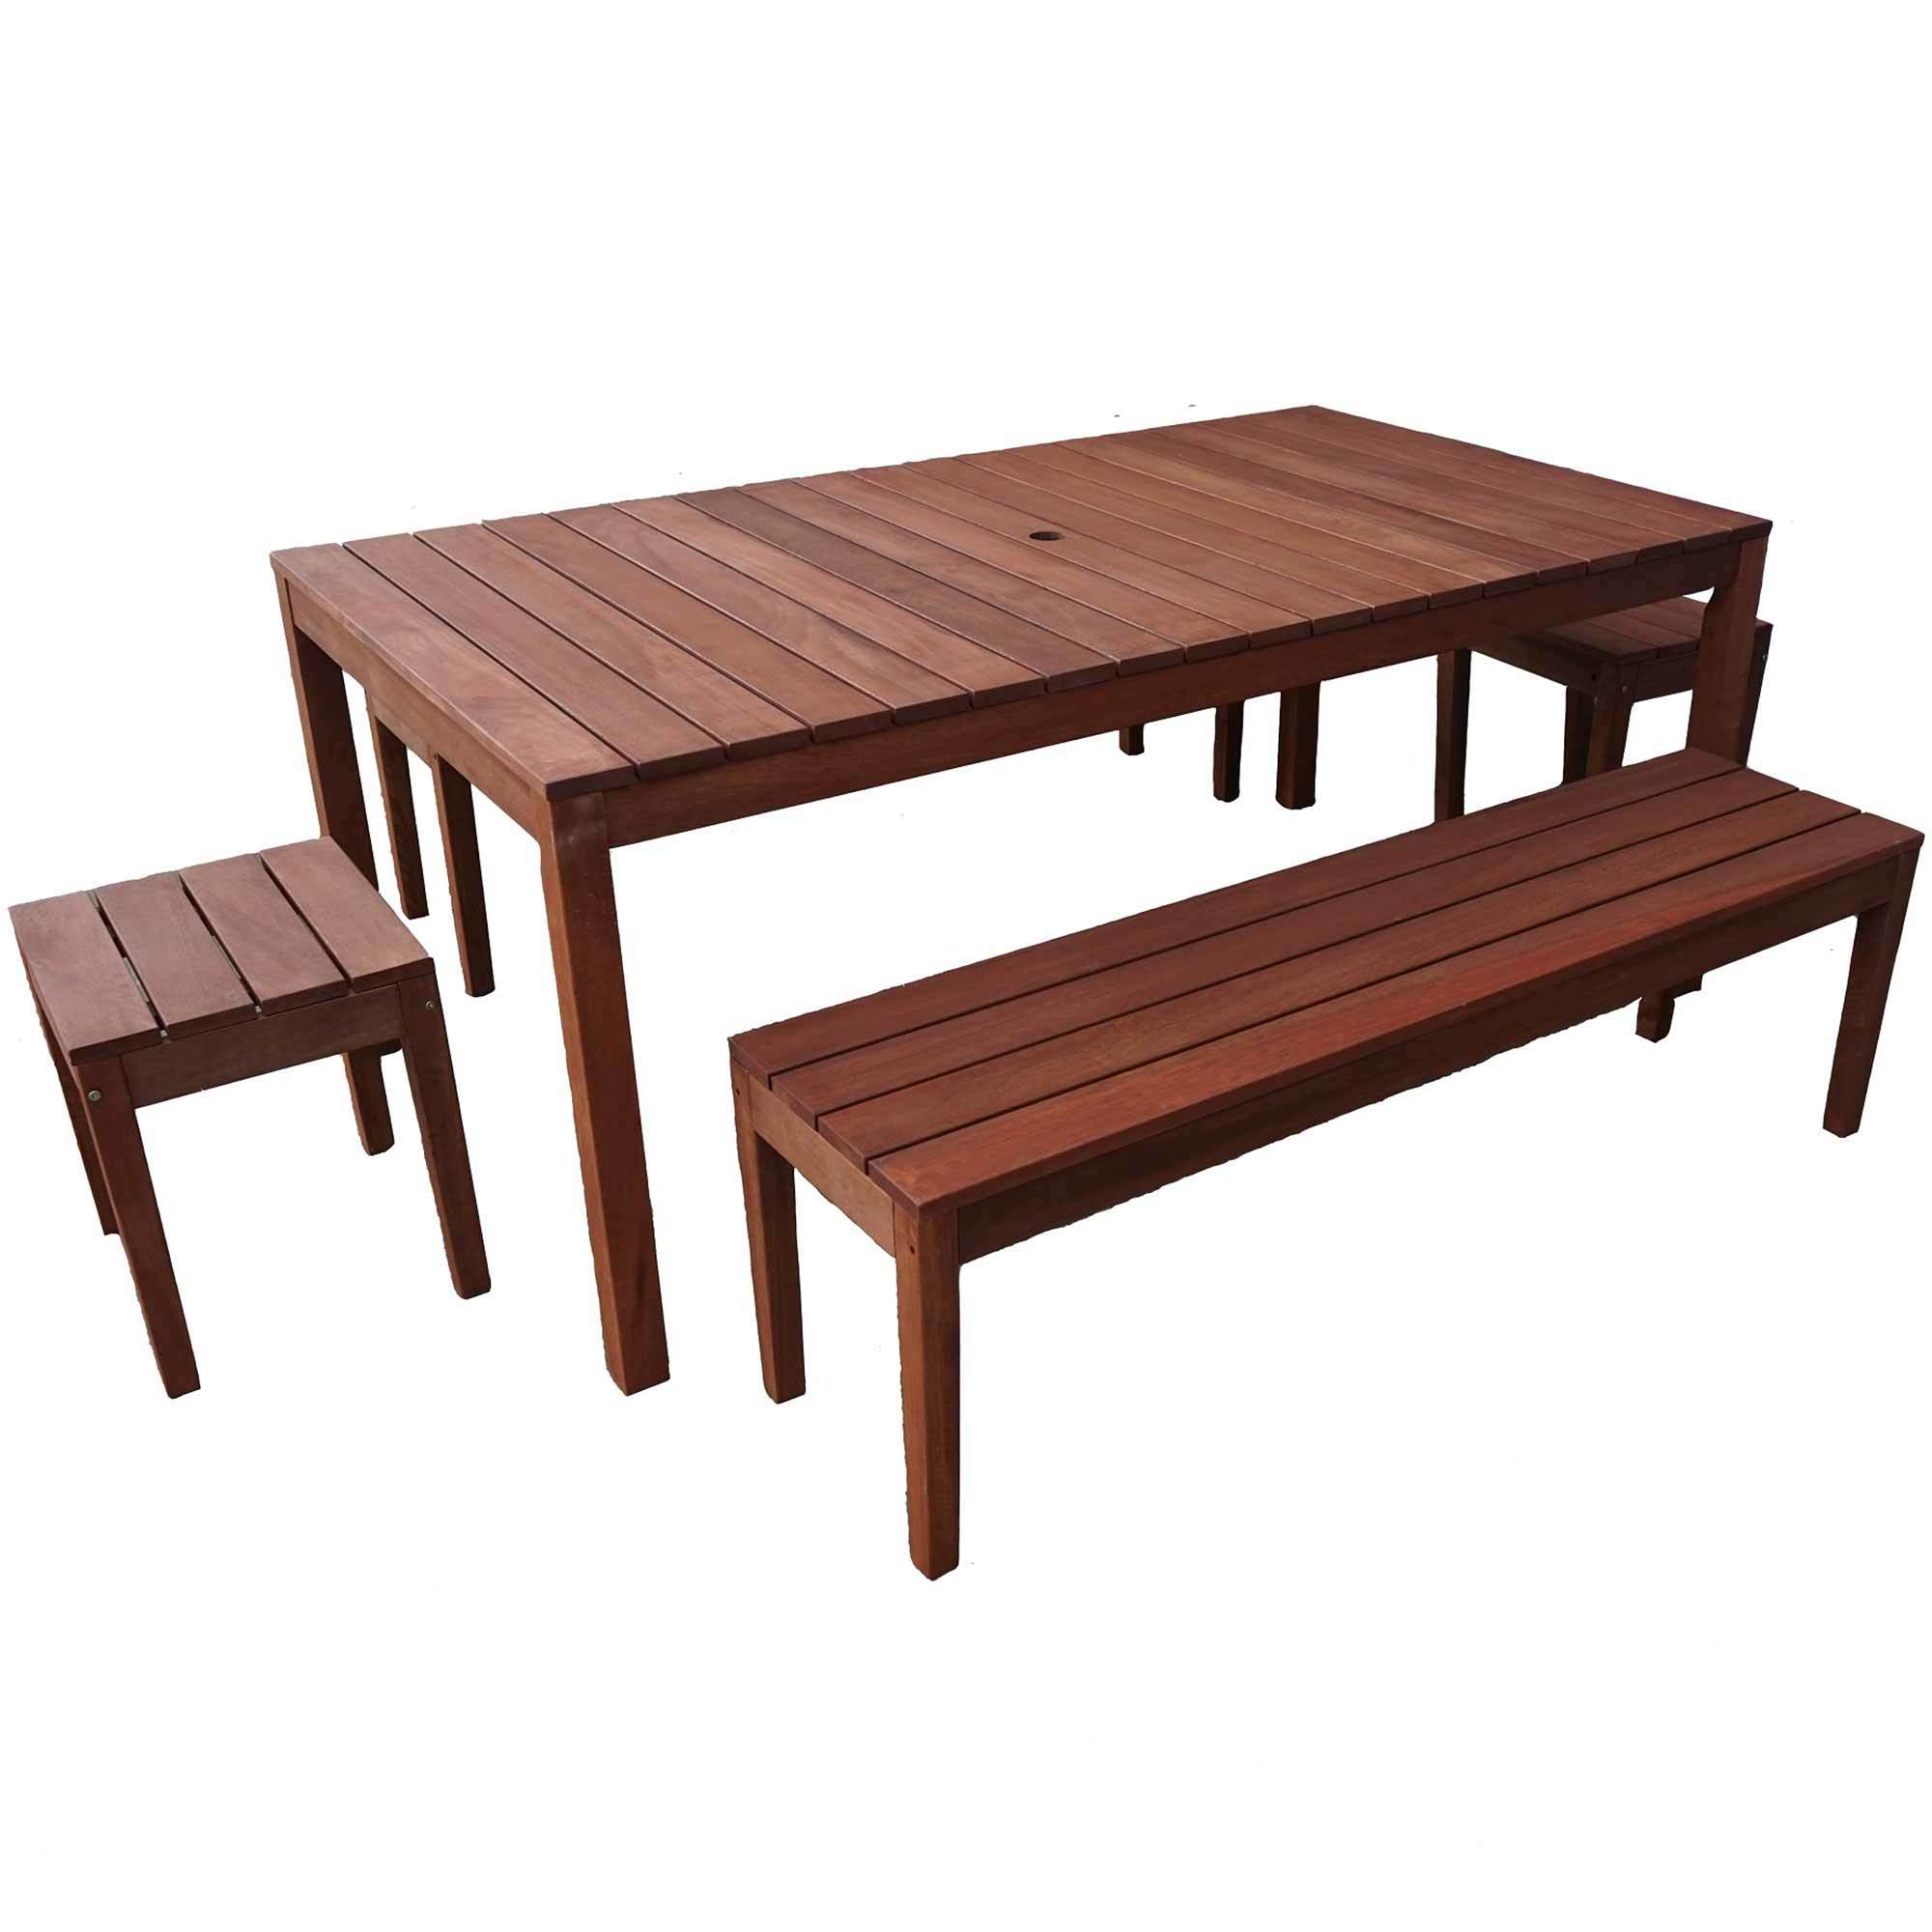 8 Seater Outdoor Table Bench Set, Outdoor Timber Dining Table With Bench Seats